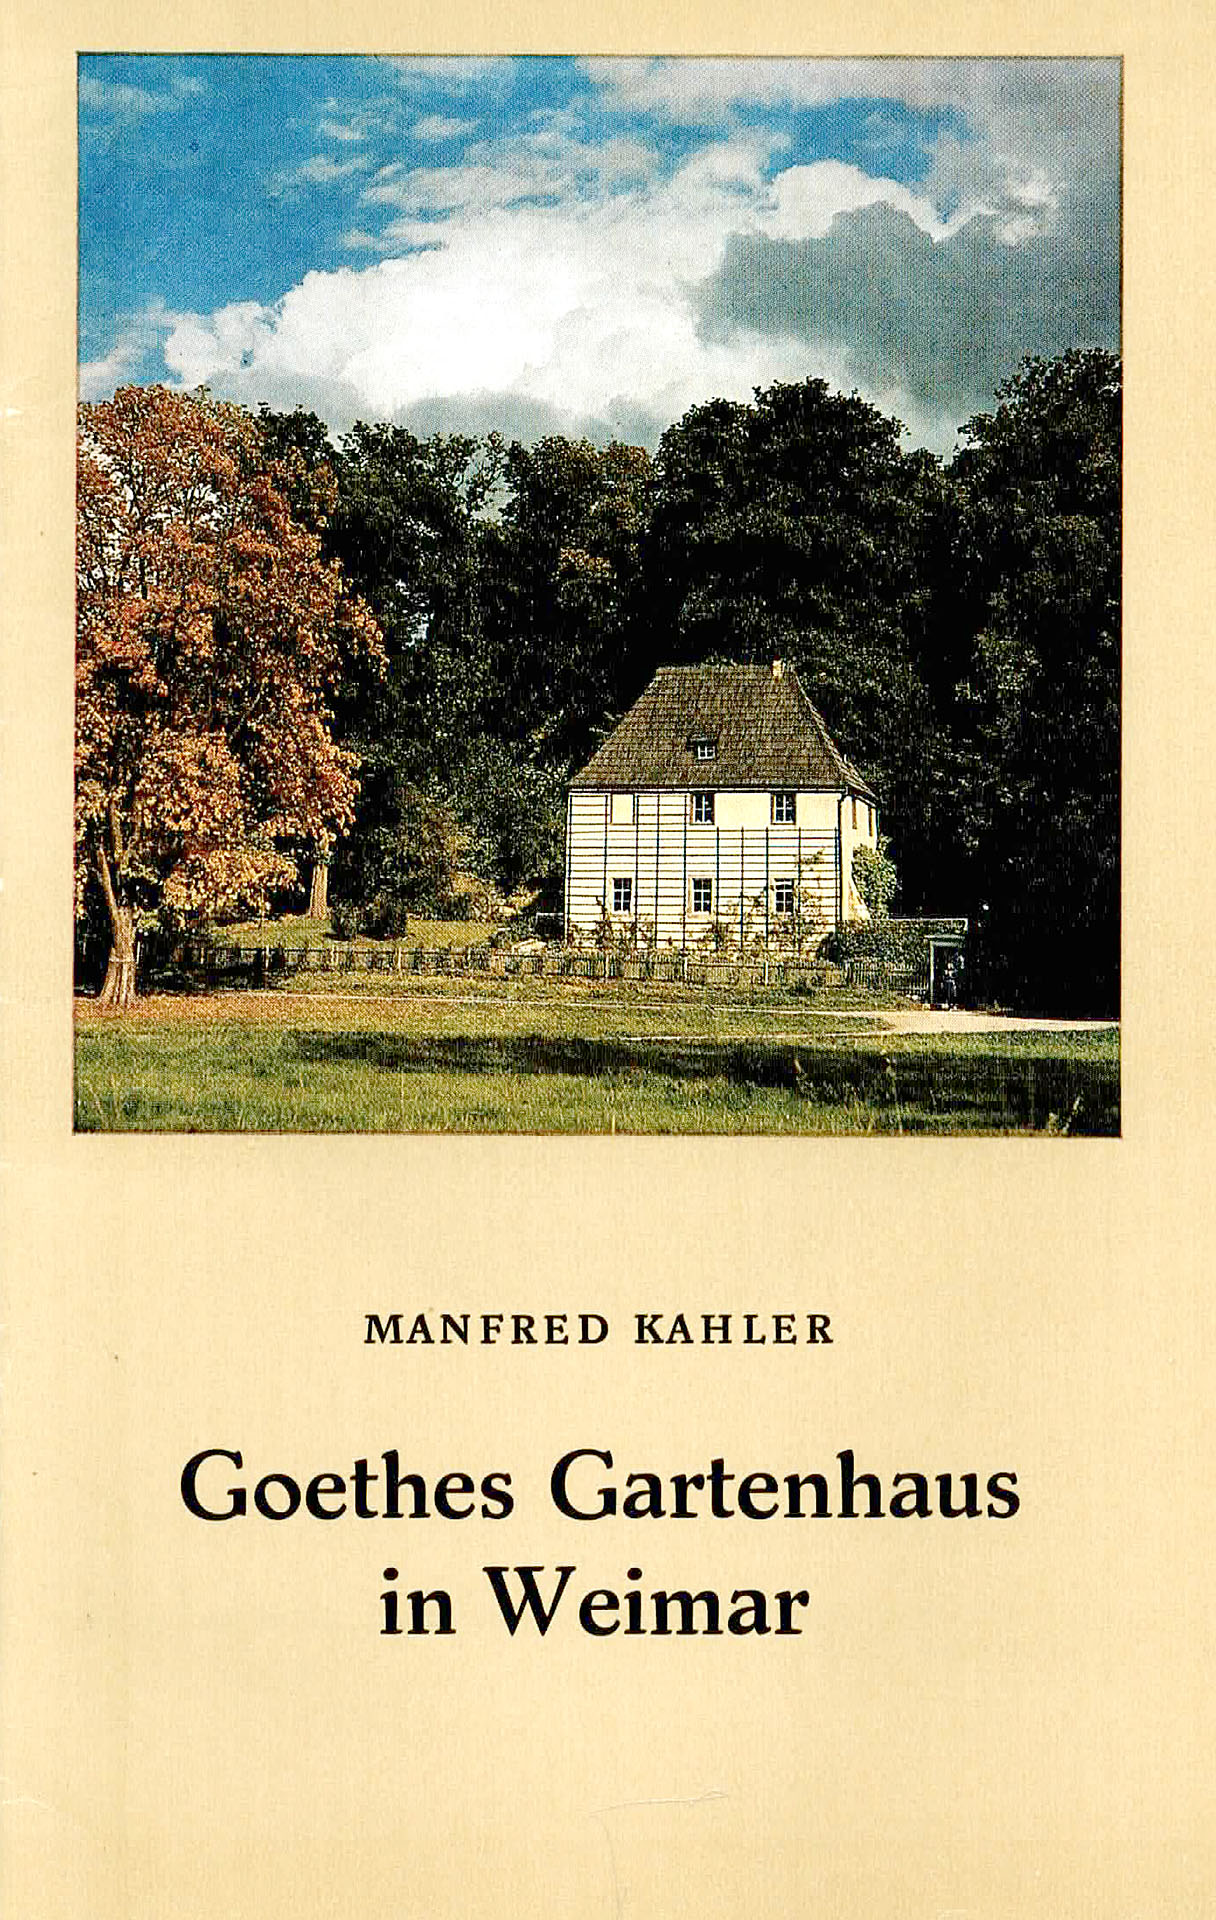 Goethes Gartenhaus in Weimar - Kahler, Manfred